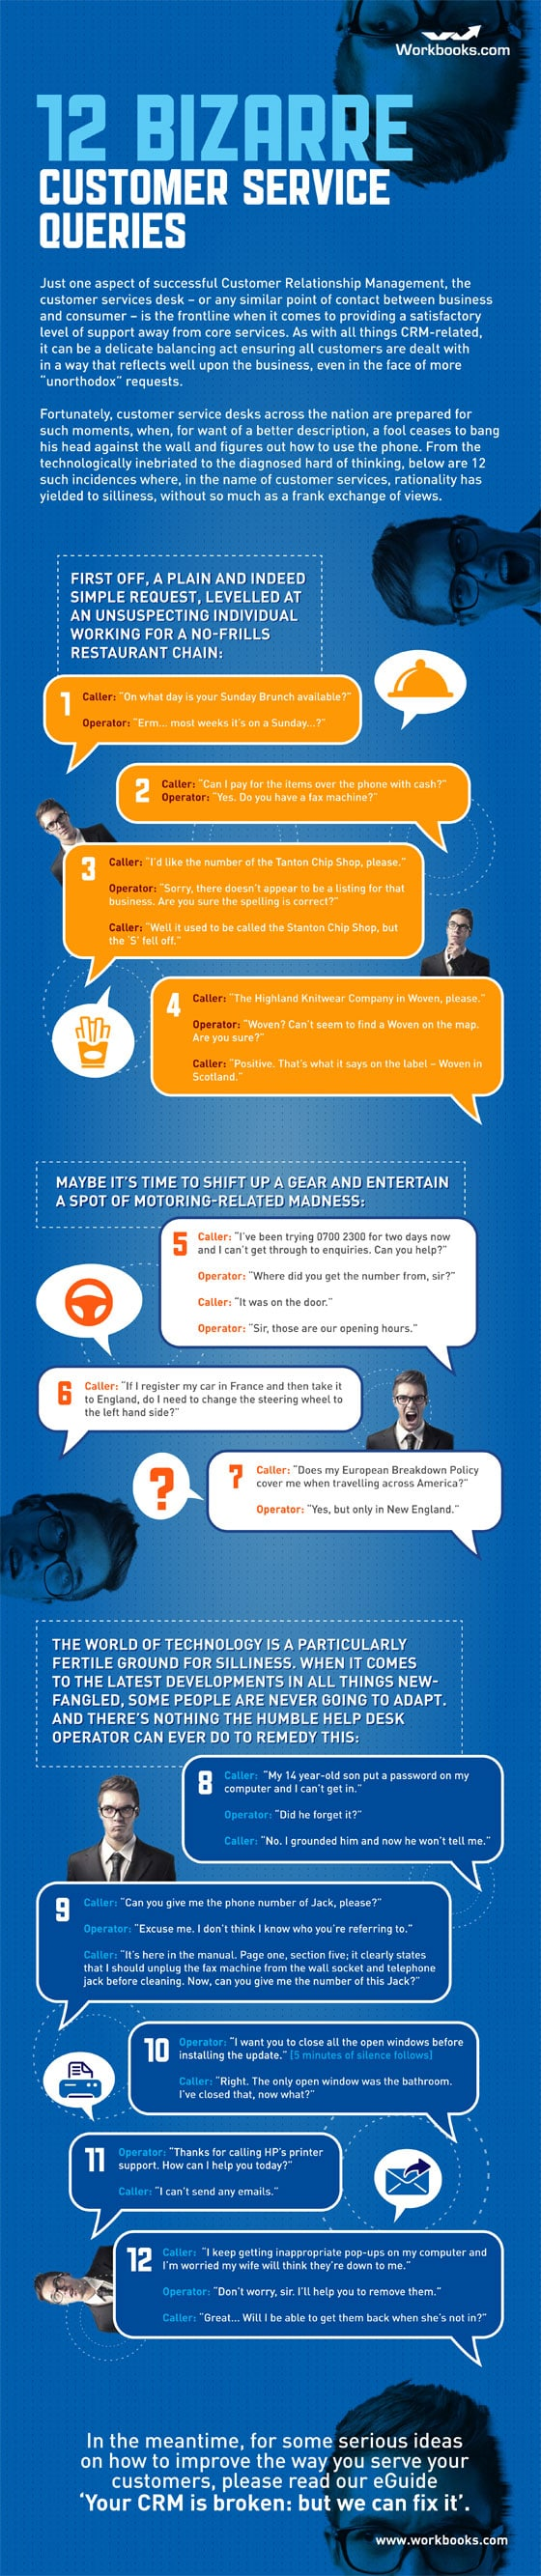 bizarre-customer-service-queries-infographic